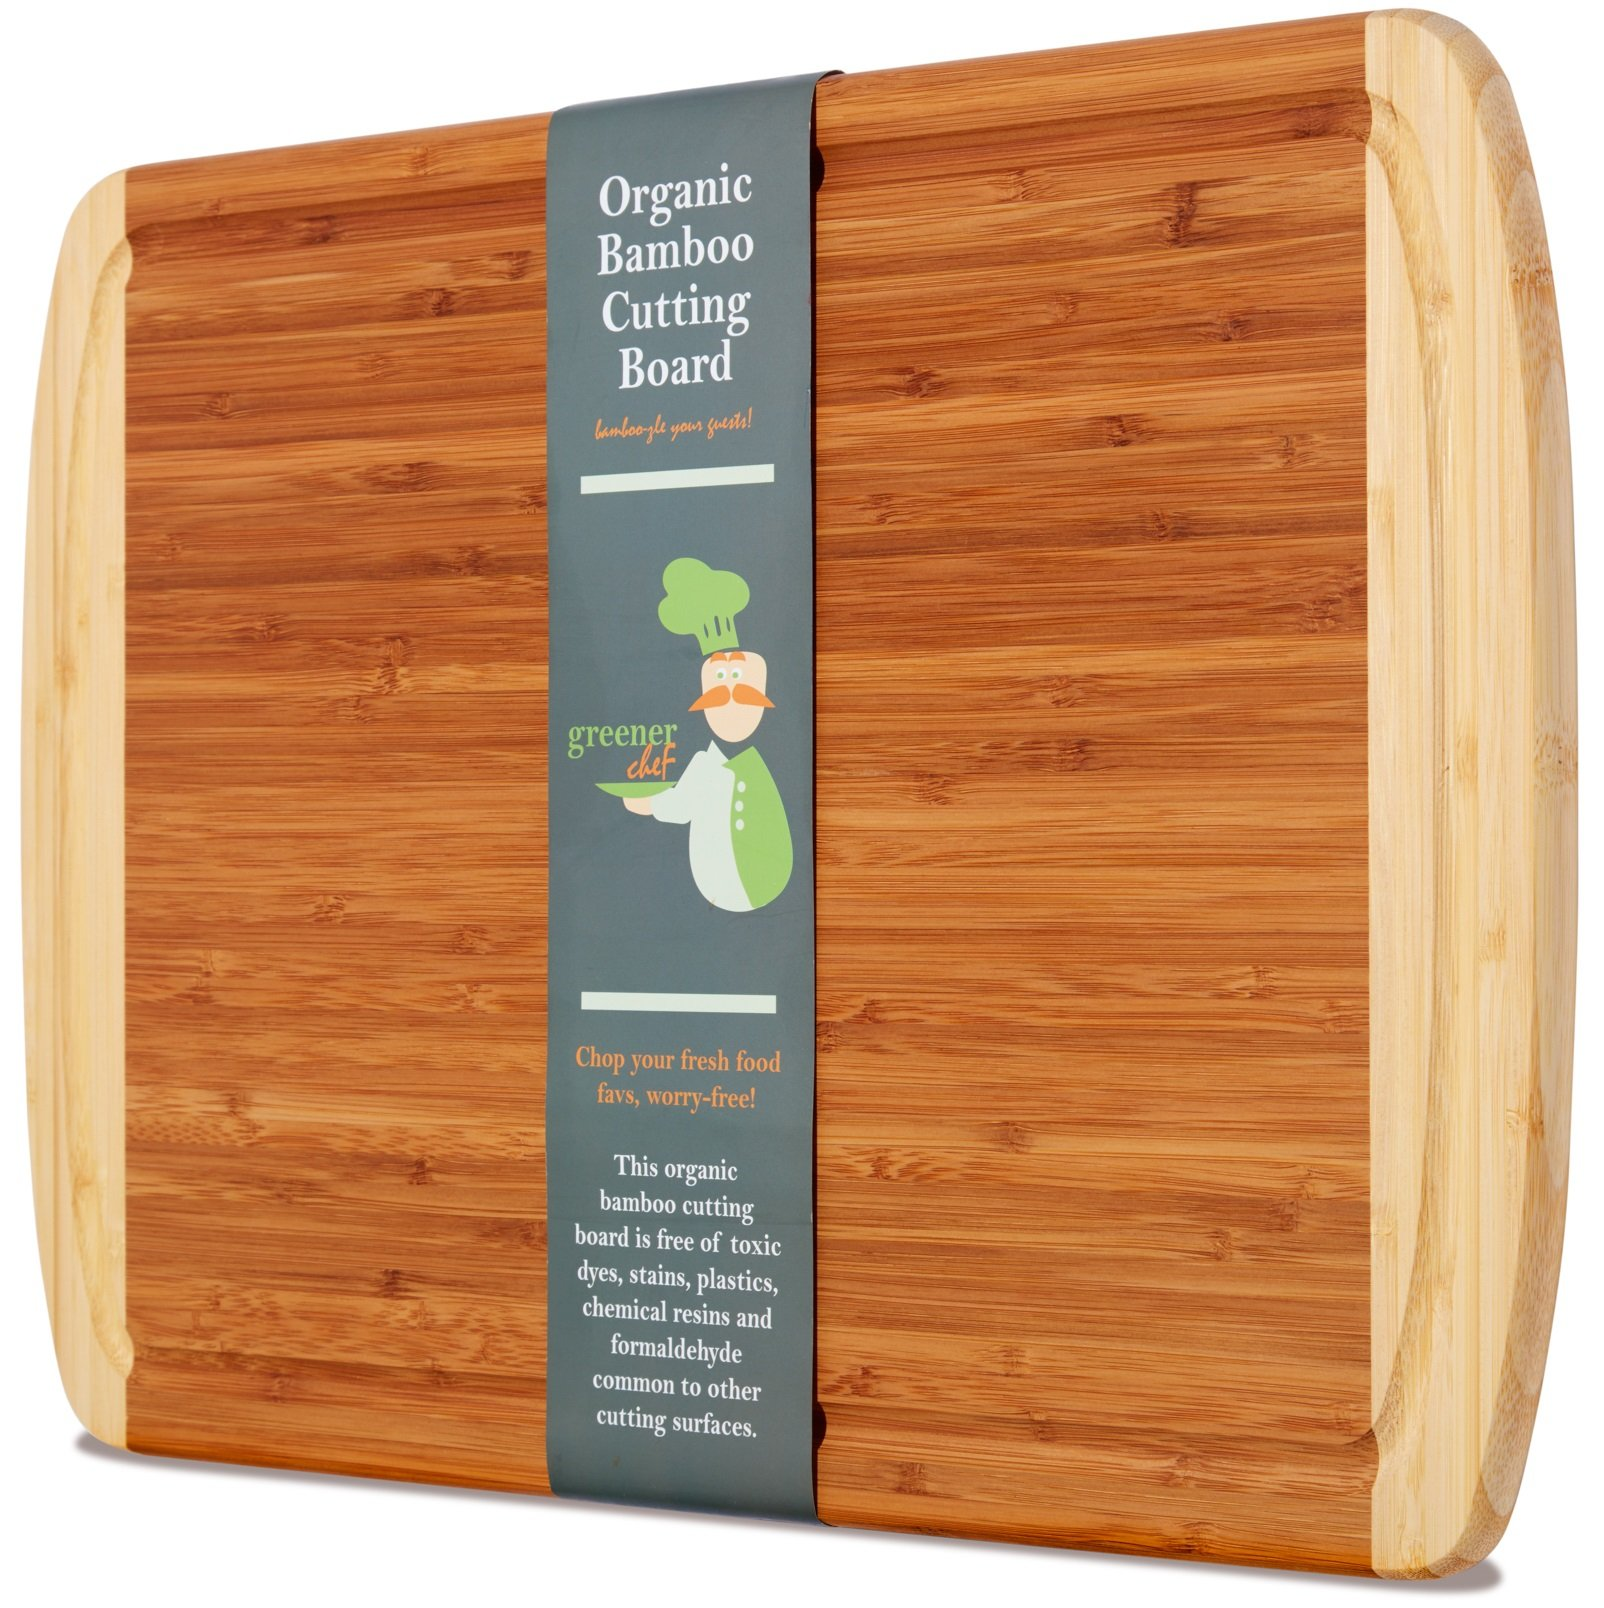 Extra Large Organic Bamboo Cutting Board for Kitchen - NEW CRACK-FREE DESIGN - Best Wood Chopping Boards w/Juice Groove for Carving Meat, Wooden Butcher Block for Vegetables & Serving Tray for Cheese by Greener Chef